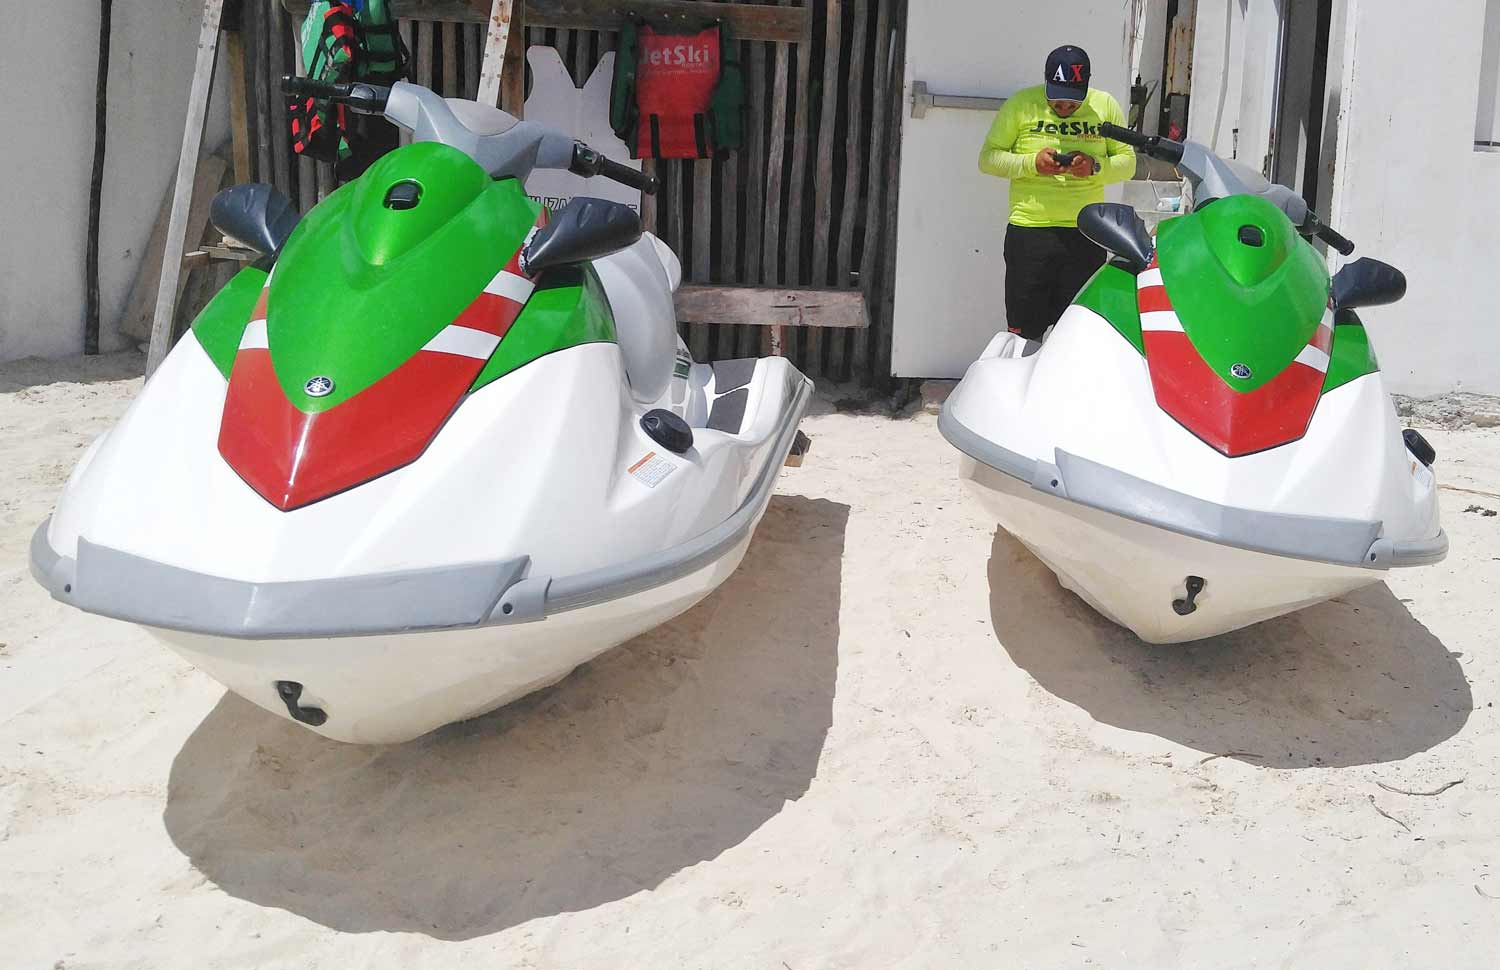 Picture taken of front view of two green and white jet skis on the beach in Playa Del Carmen, Mexico.